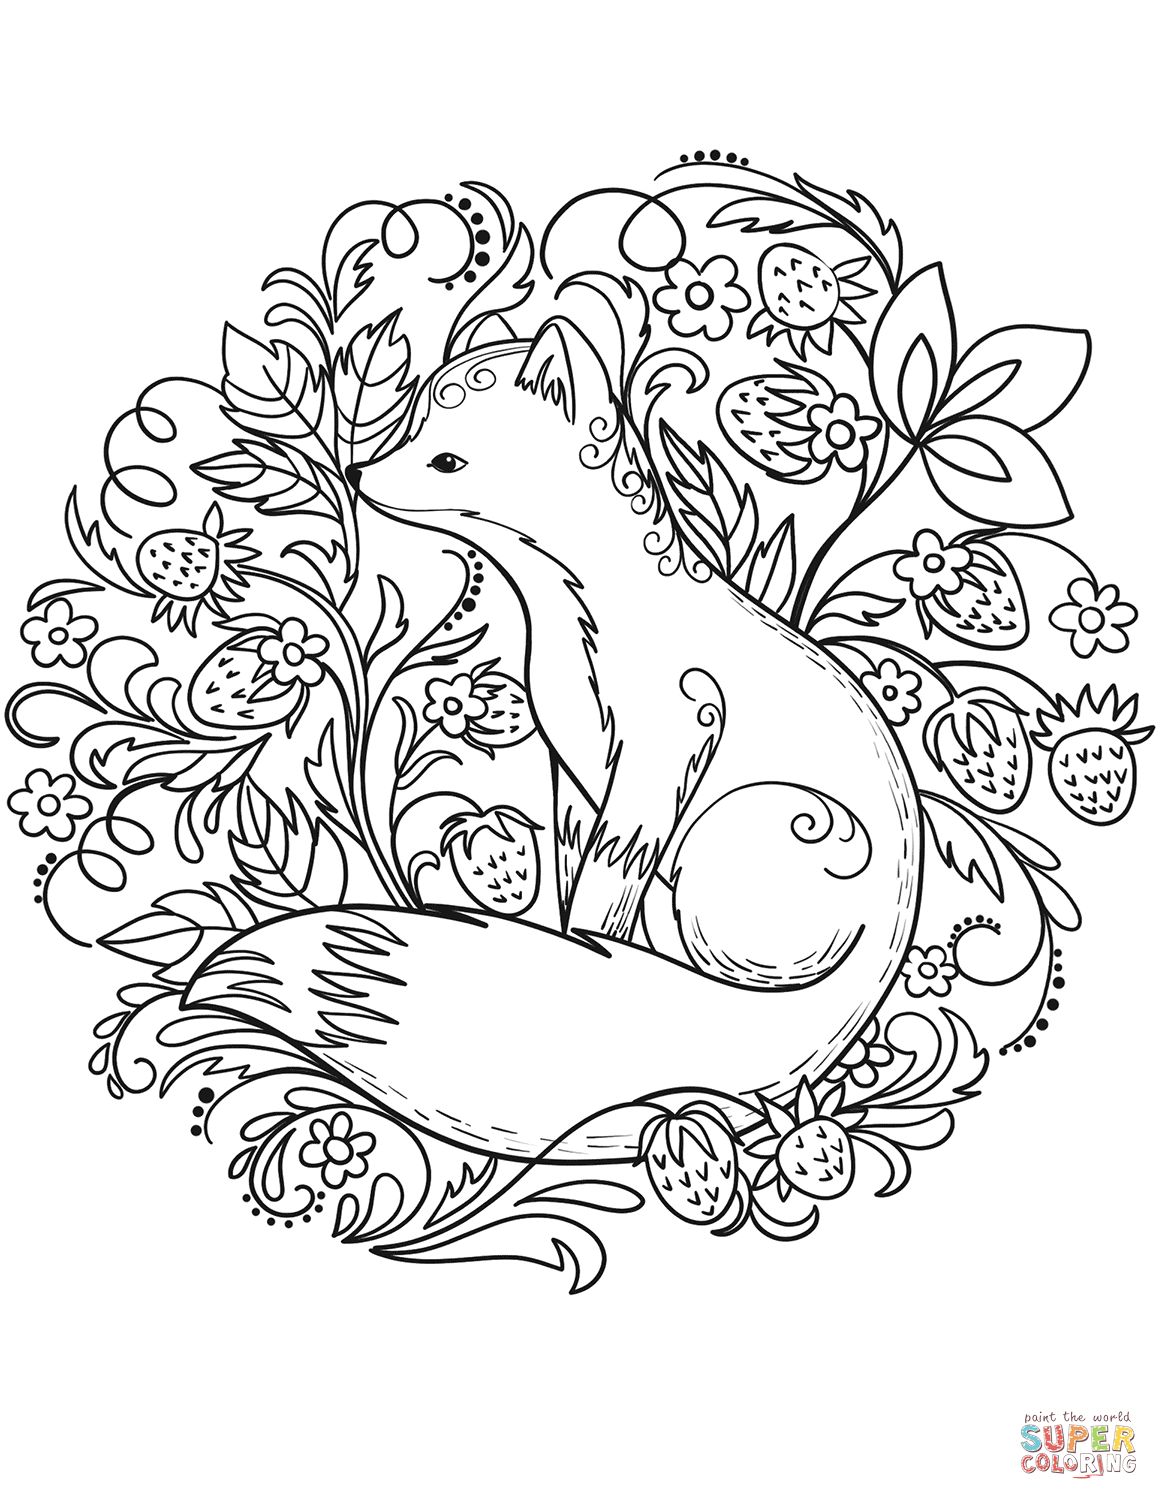 fox face coloring page red fox coloring page free printable coloring pages face fox coloring page